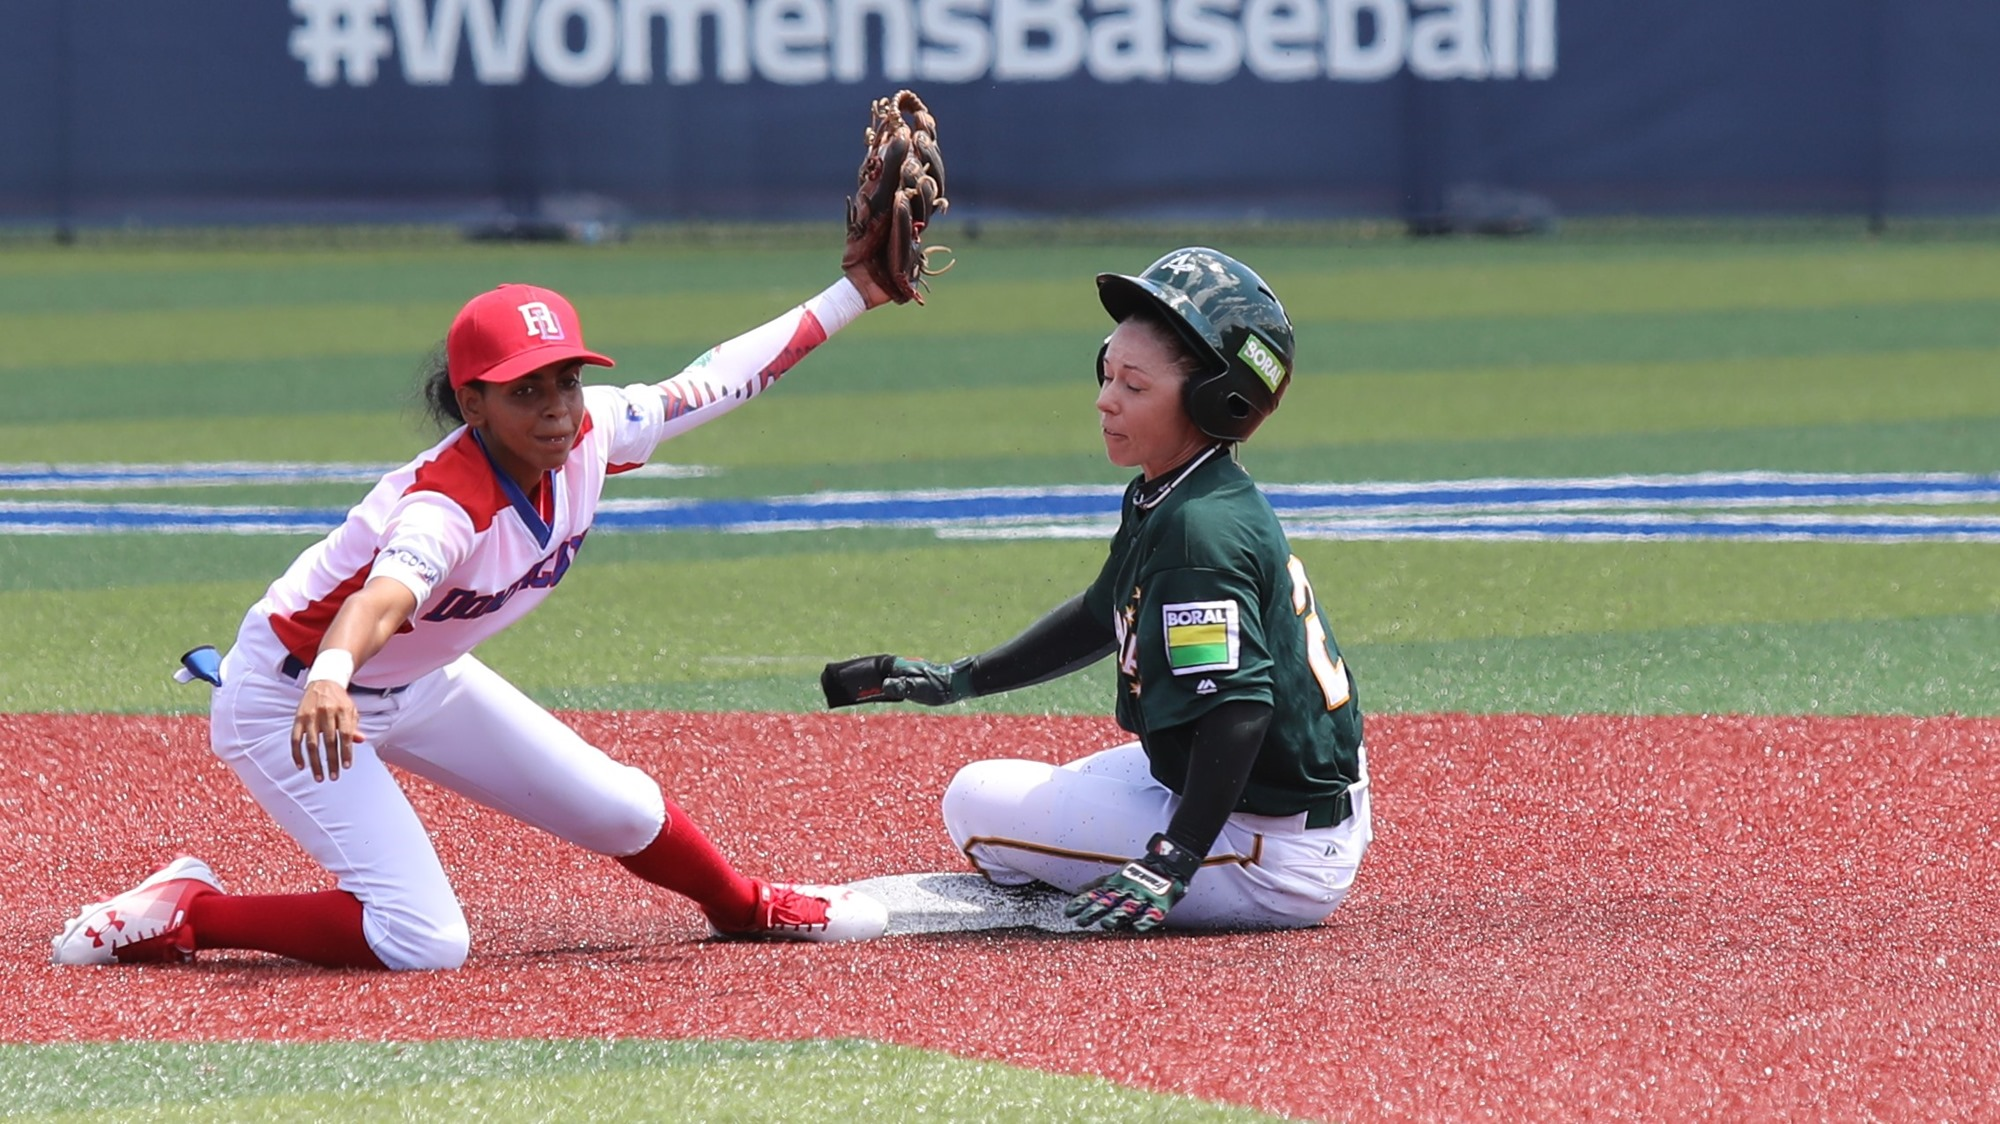 Yocarla Guerrero defends second base for Dominican Republic as Amanda Shae slides in